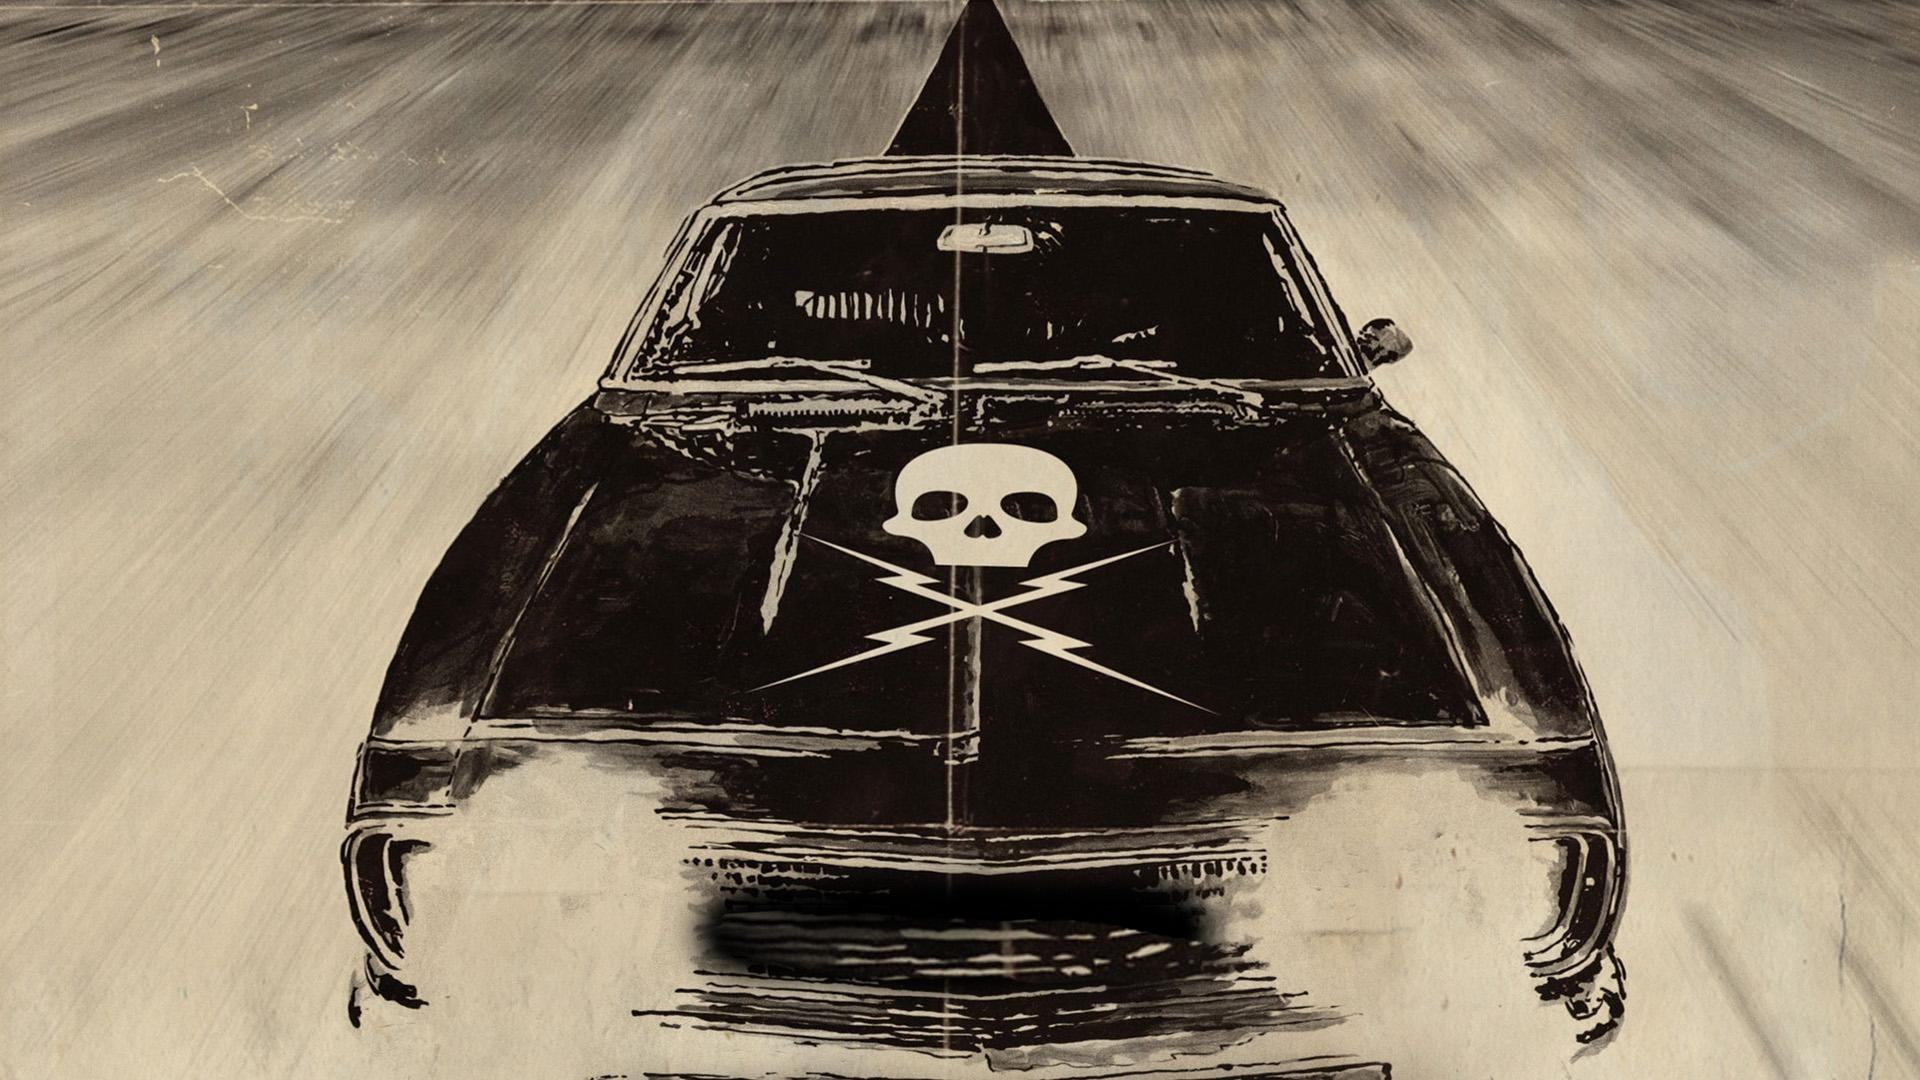 Обои Death proof, quentin tarantino 1920x1080